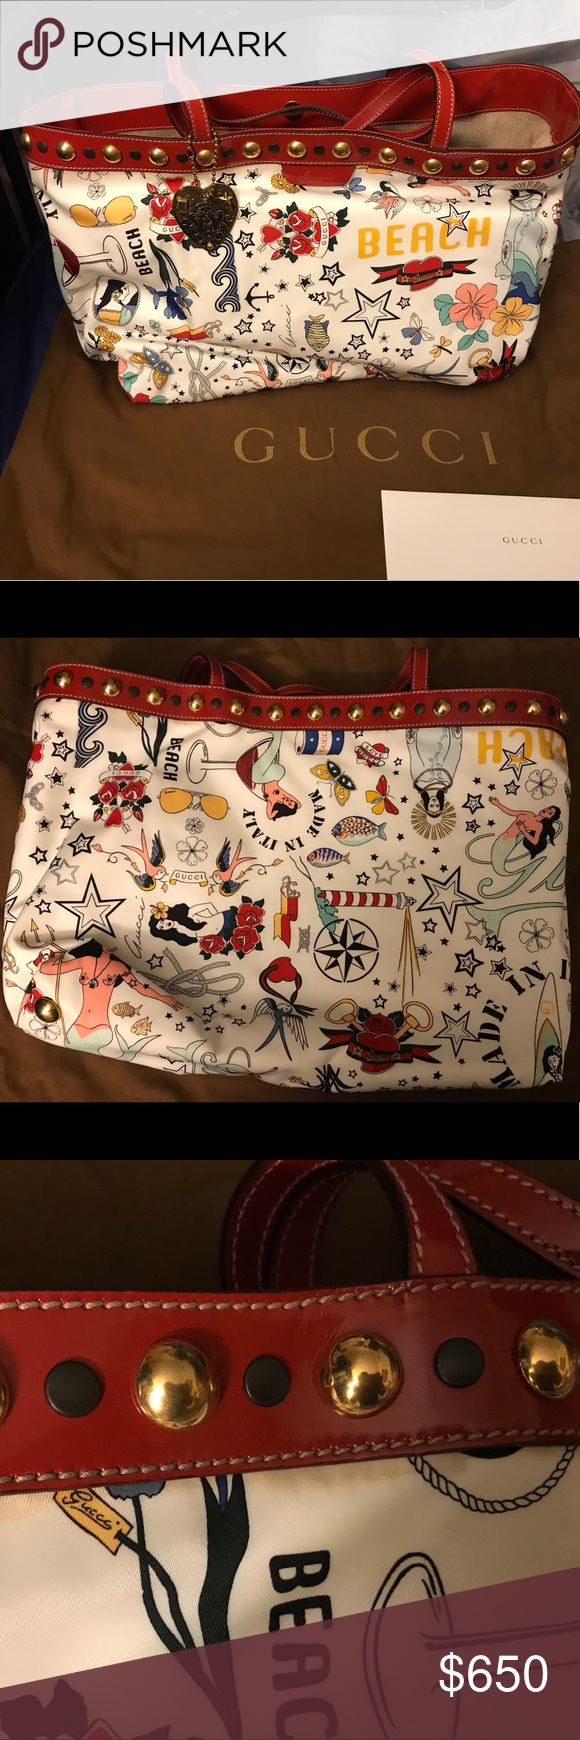 """801f8ba47f38 Gucci """"Babouska"""" Large Tote I bought this a few years ago and have only"""